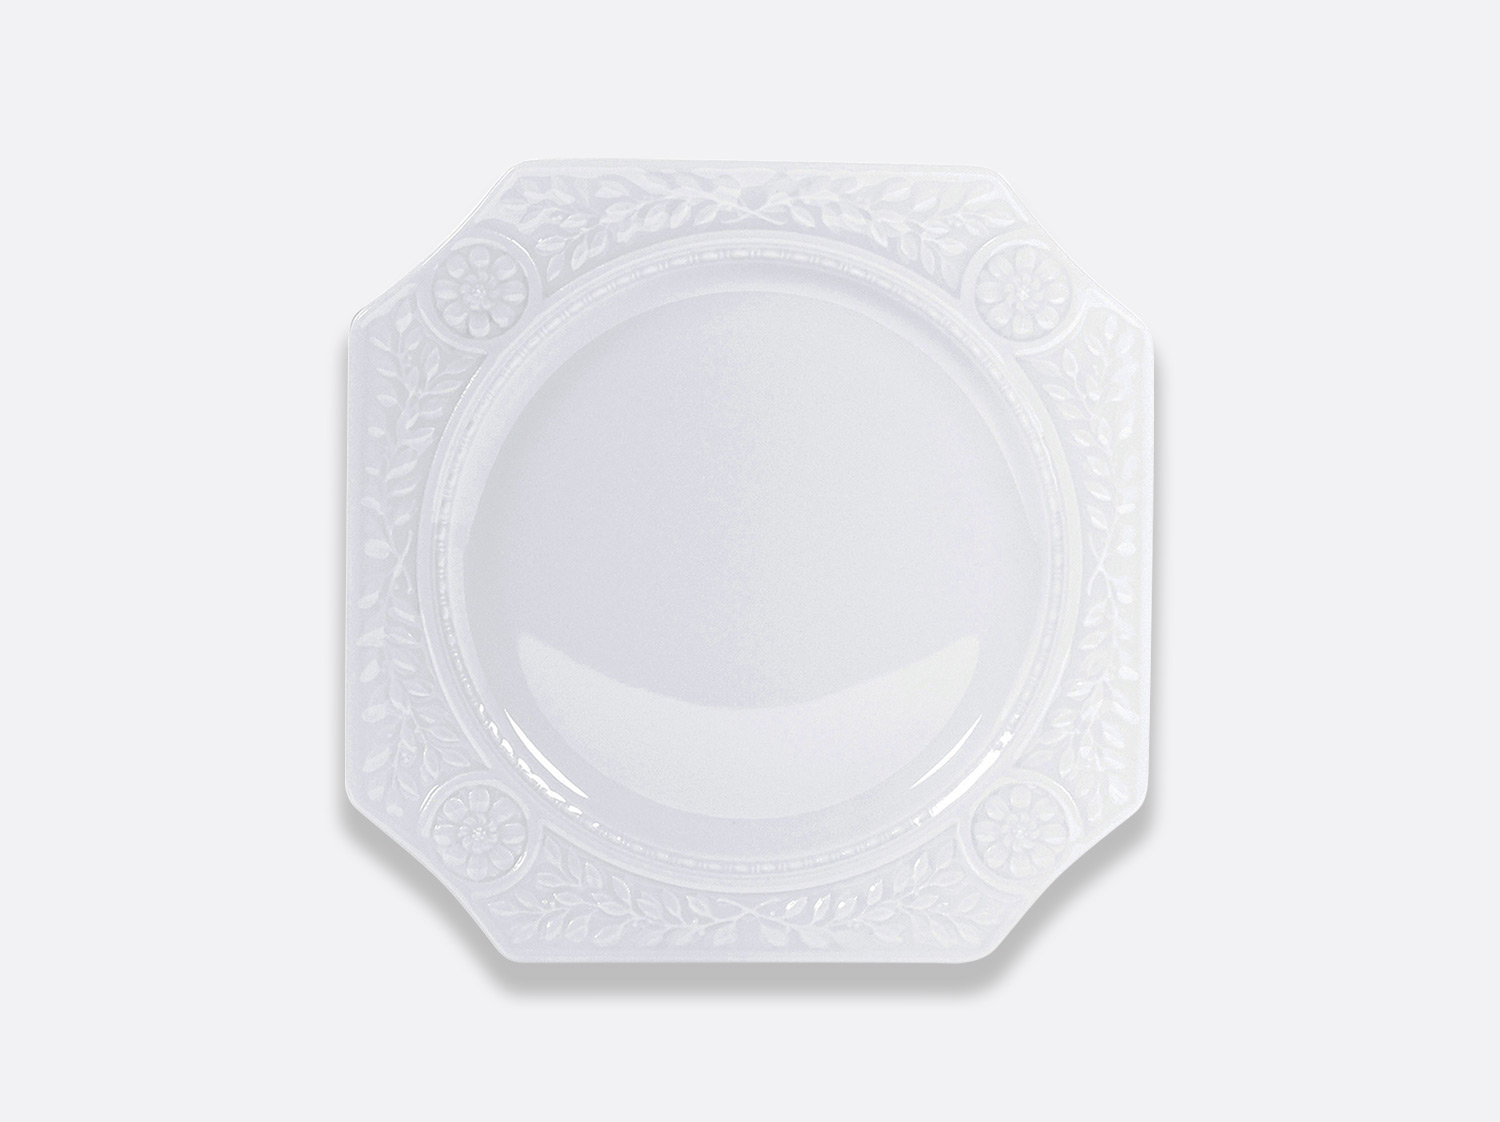 China Plate 23,5 cm of the collection Louvre | Bernardaud